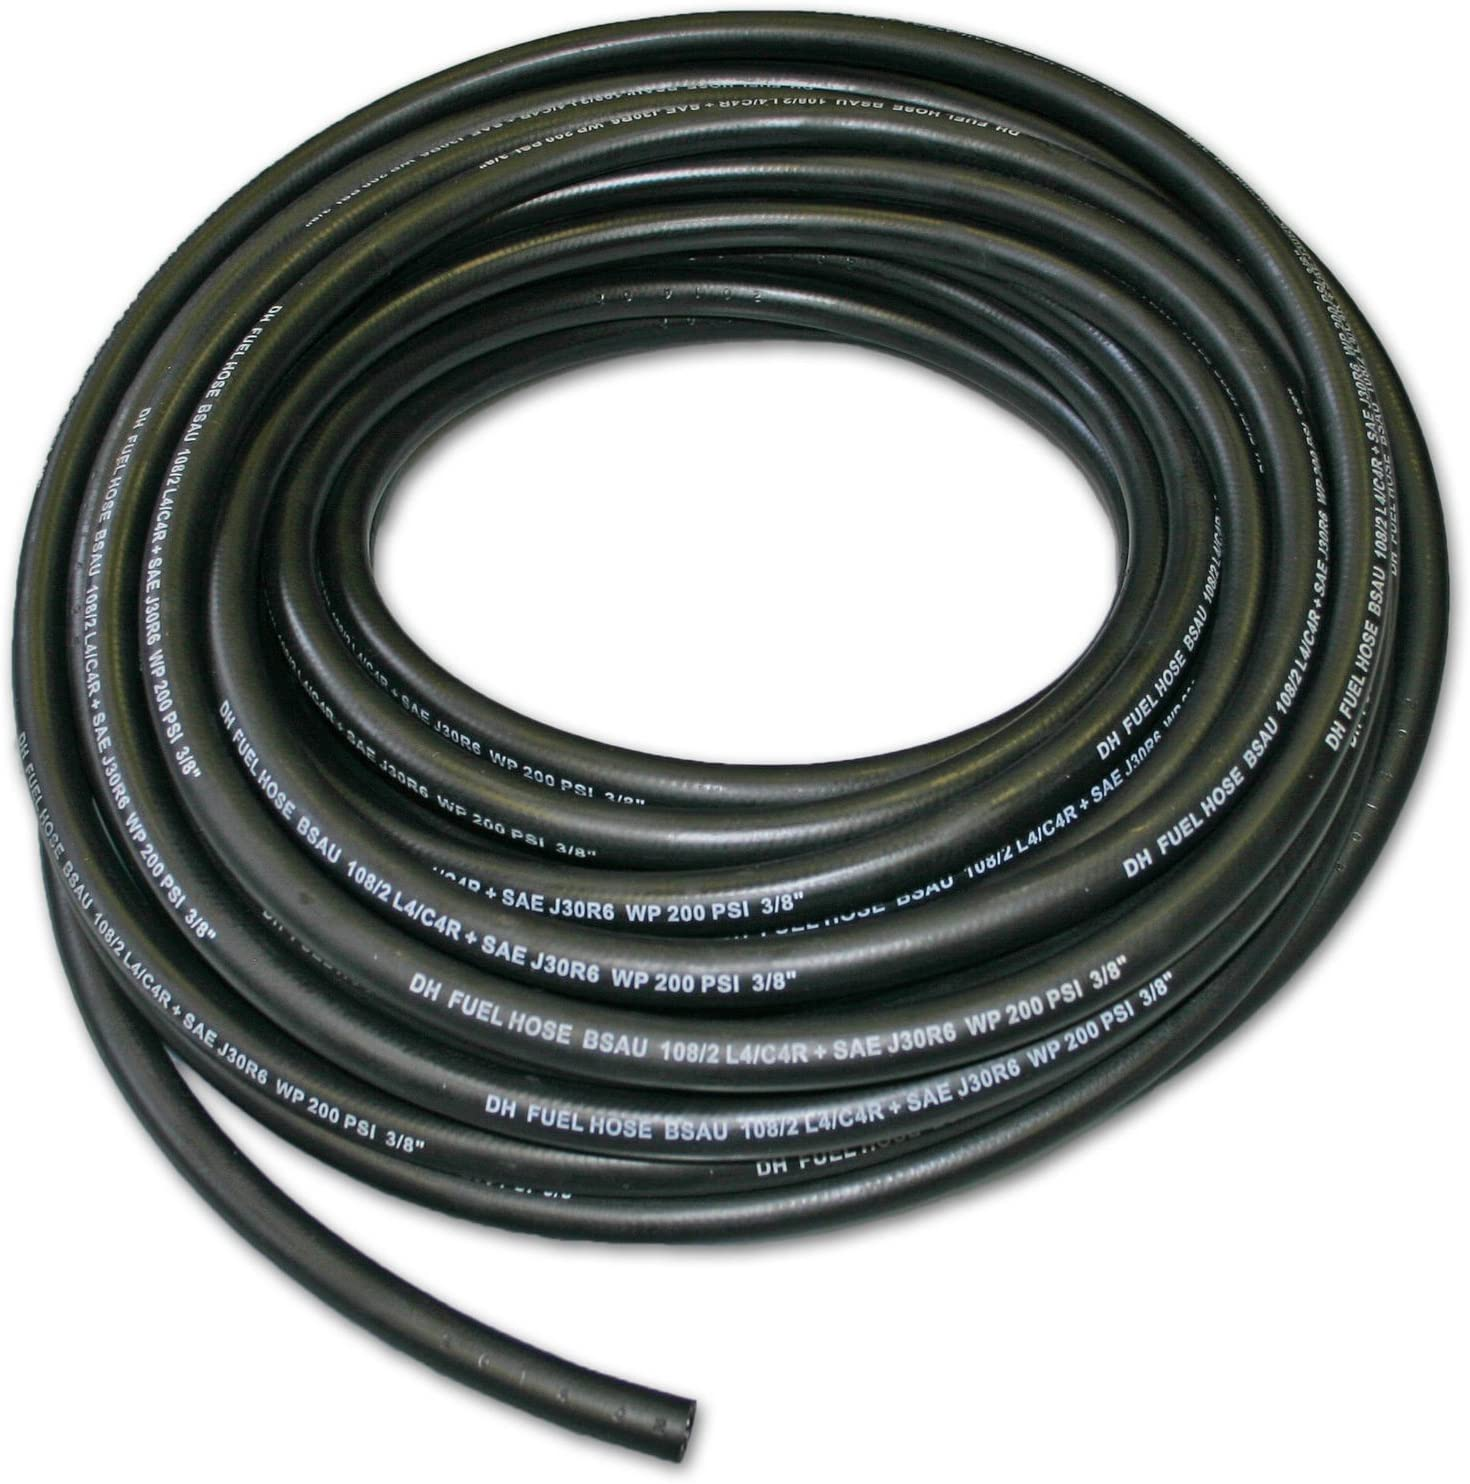 AutoSilicone. 5mm ID Black 3 Metre Length Fuel and Oil Resistant Rubber Hose